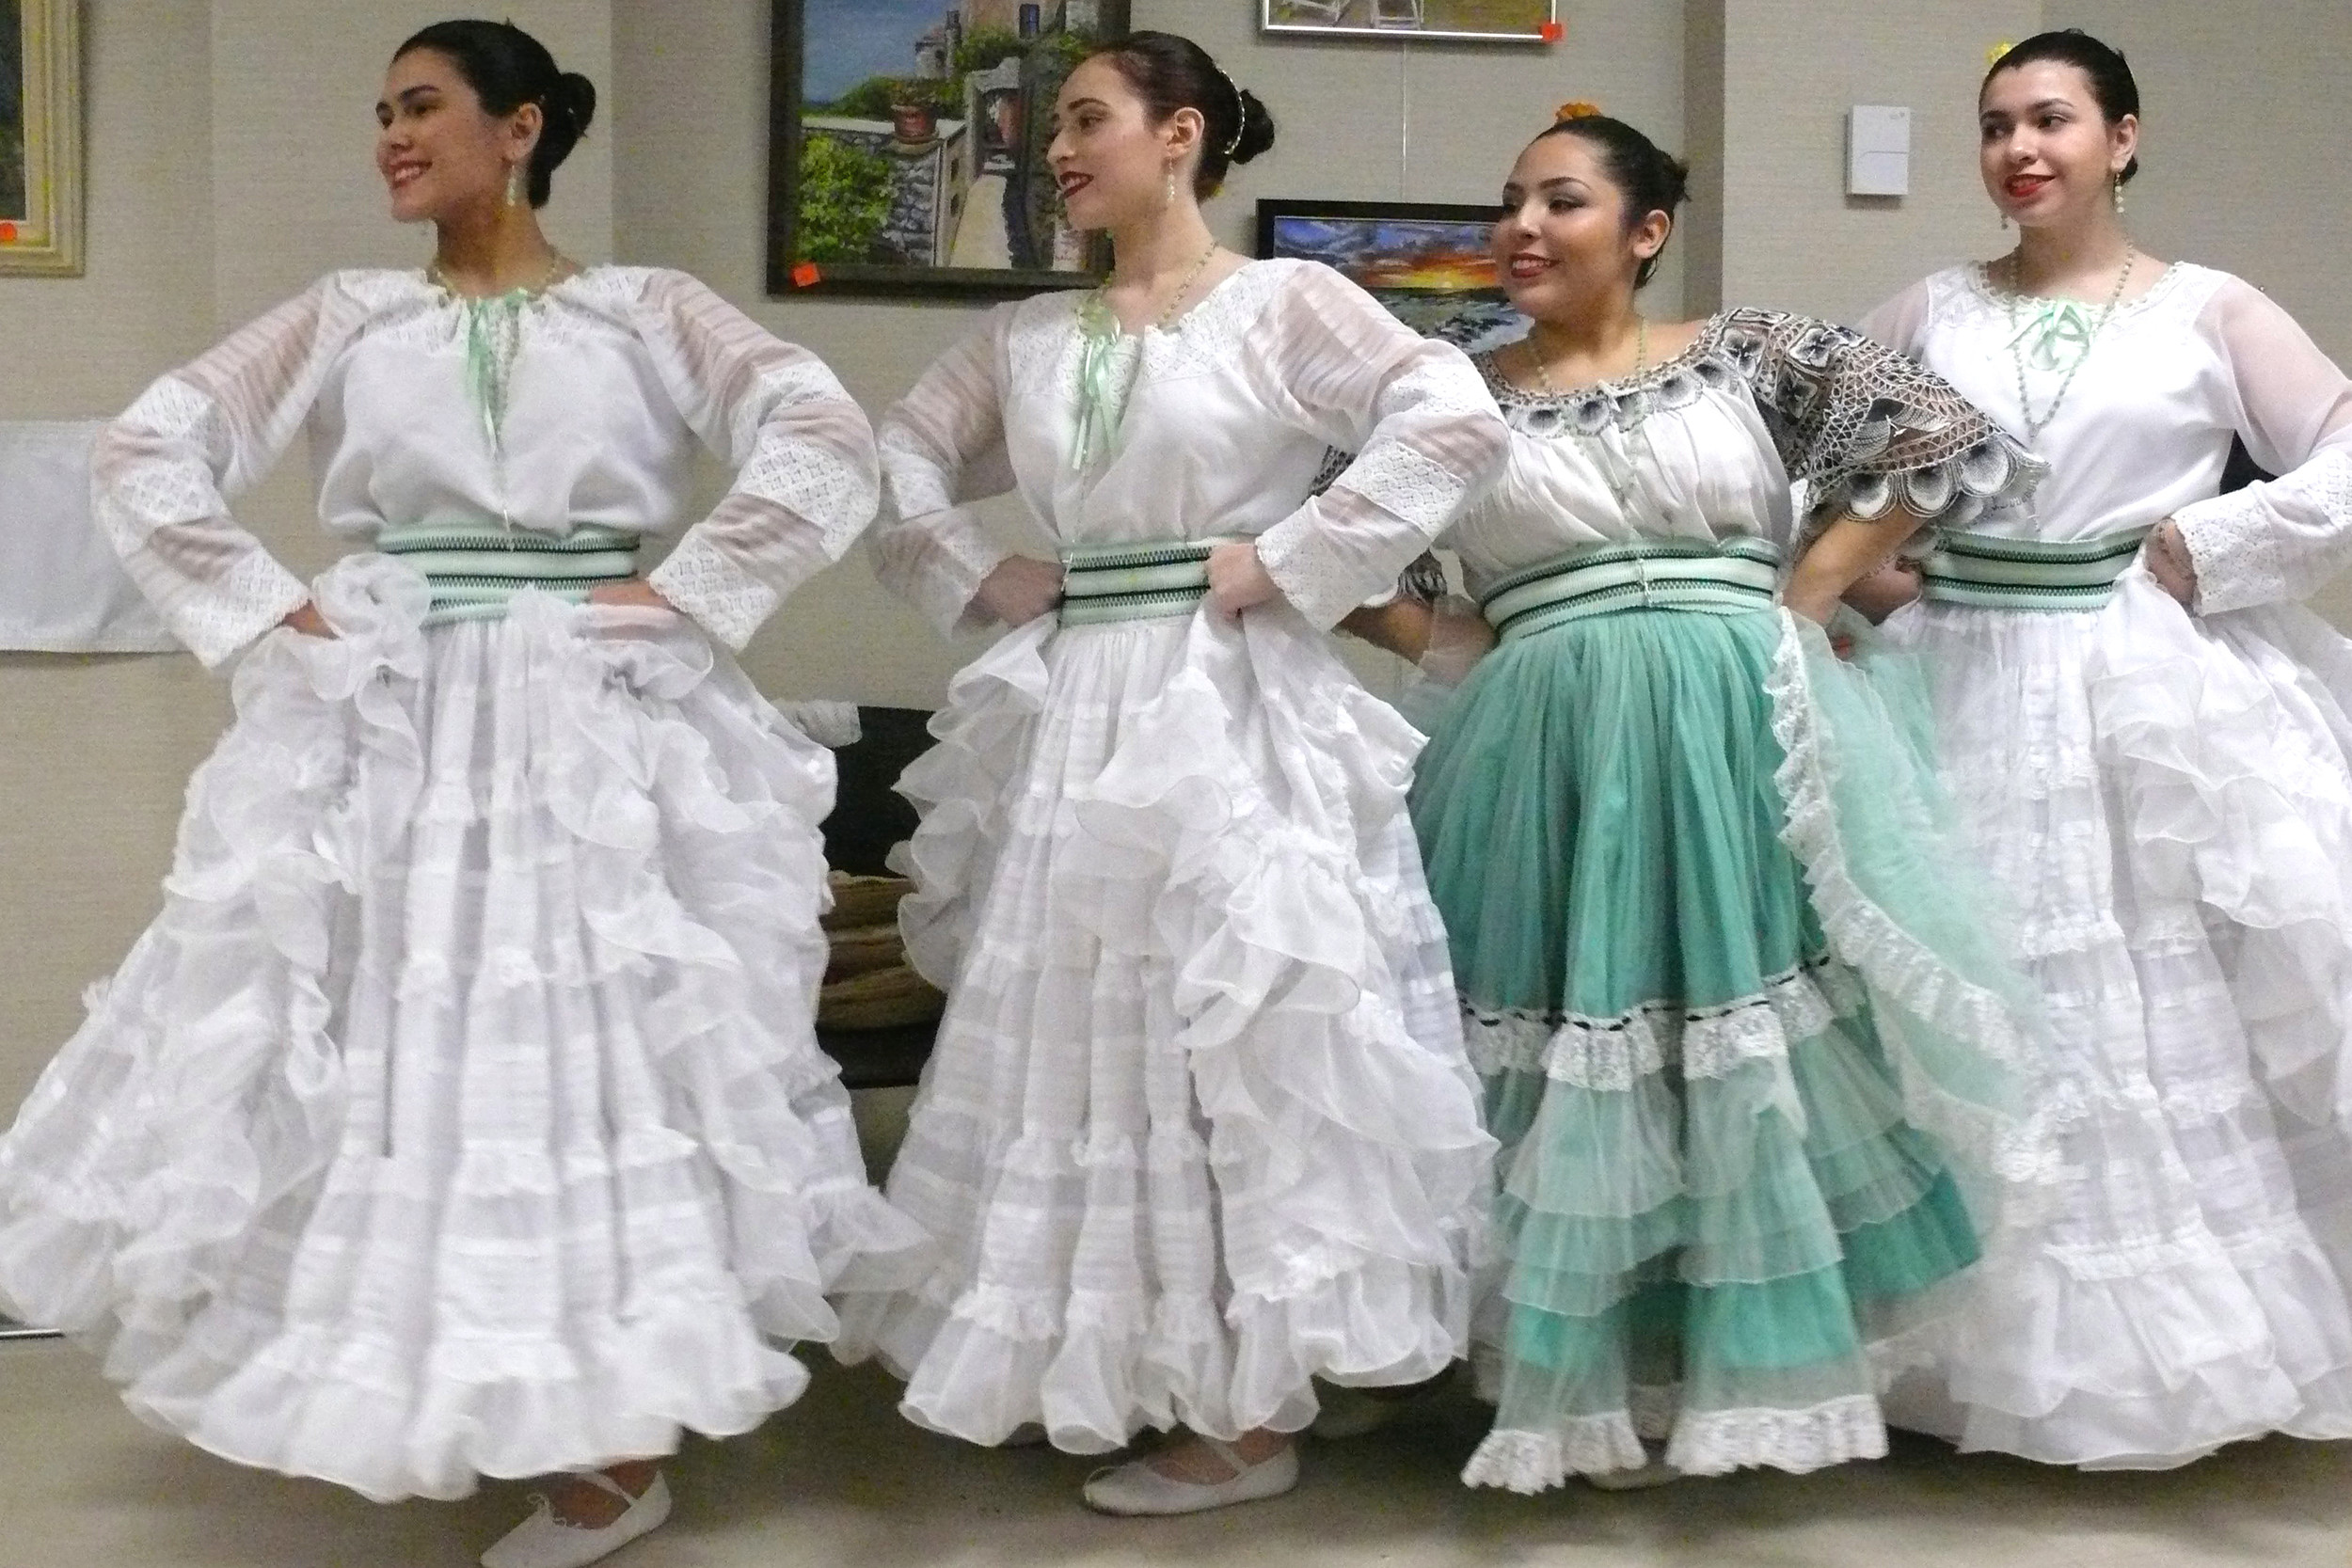 Panambi Verá dancers prepped for their performance at the East Meadow Library on March 11 as part of the Sunday Conert Series. 